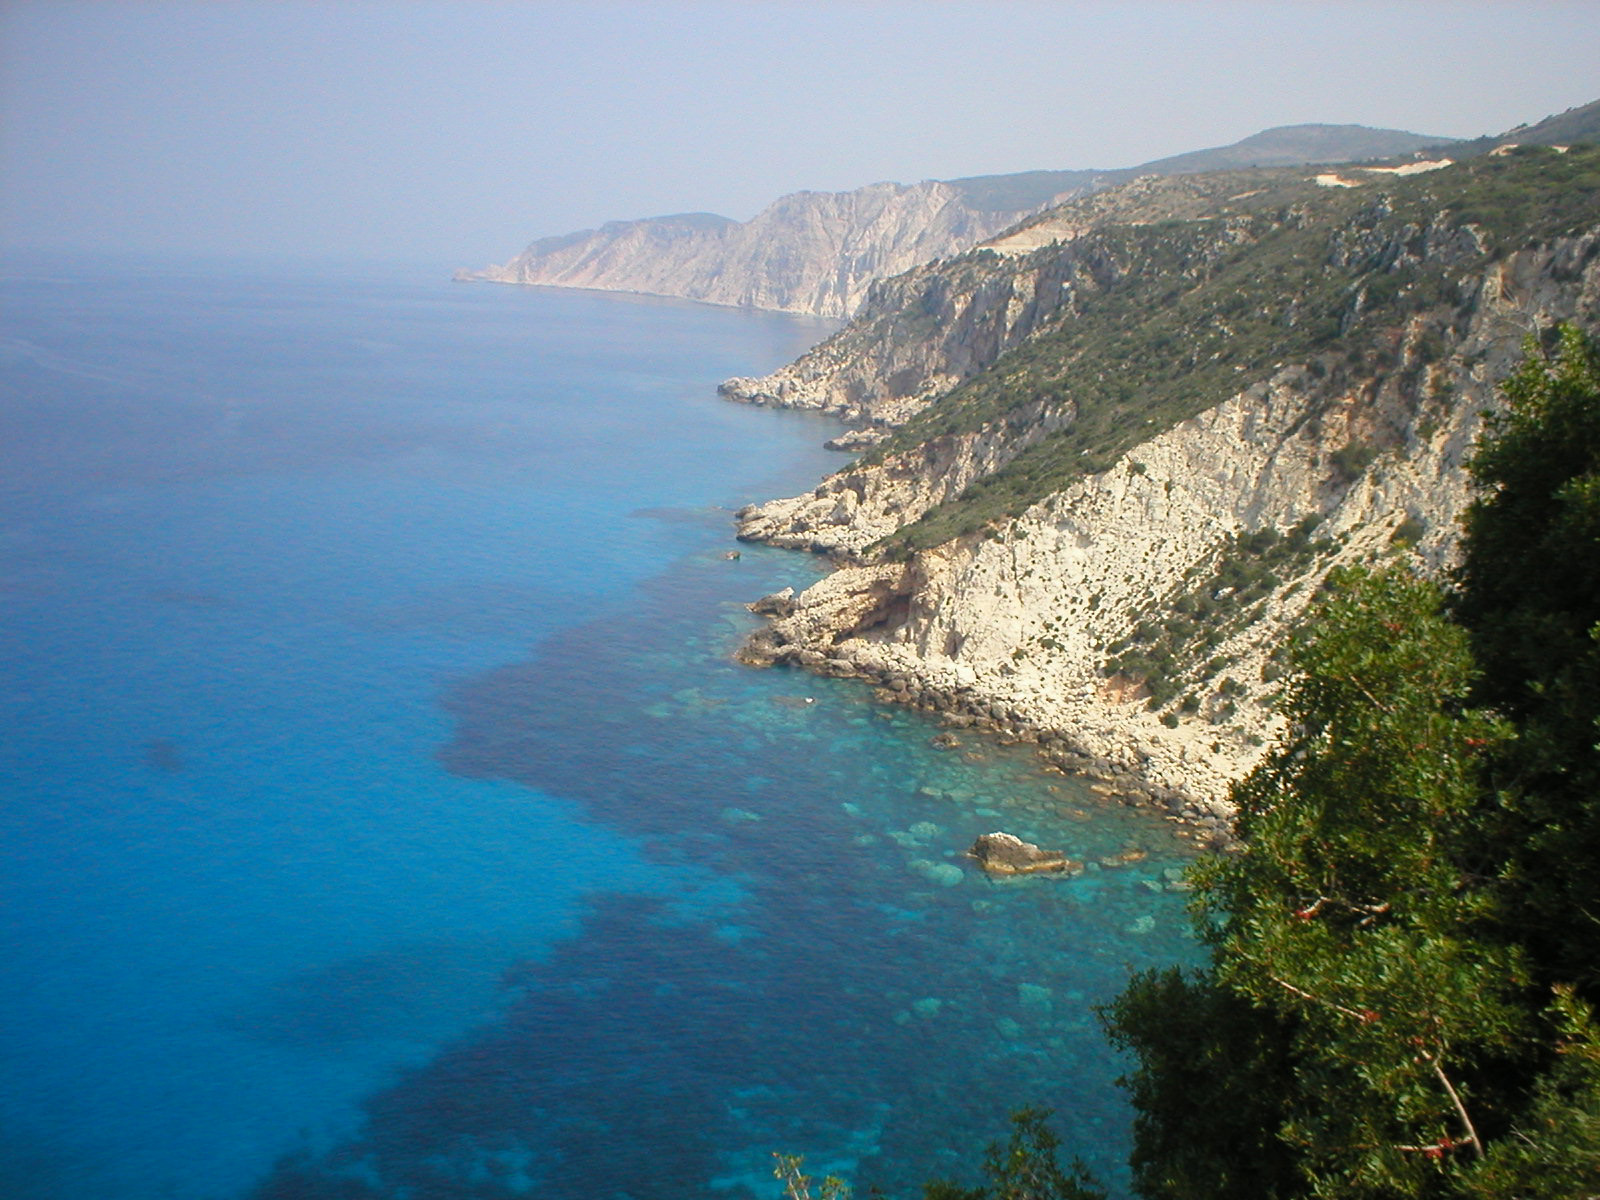 The Ionian Sea, view from the island Kefalonia, Greece - Image credit: Wikipedia